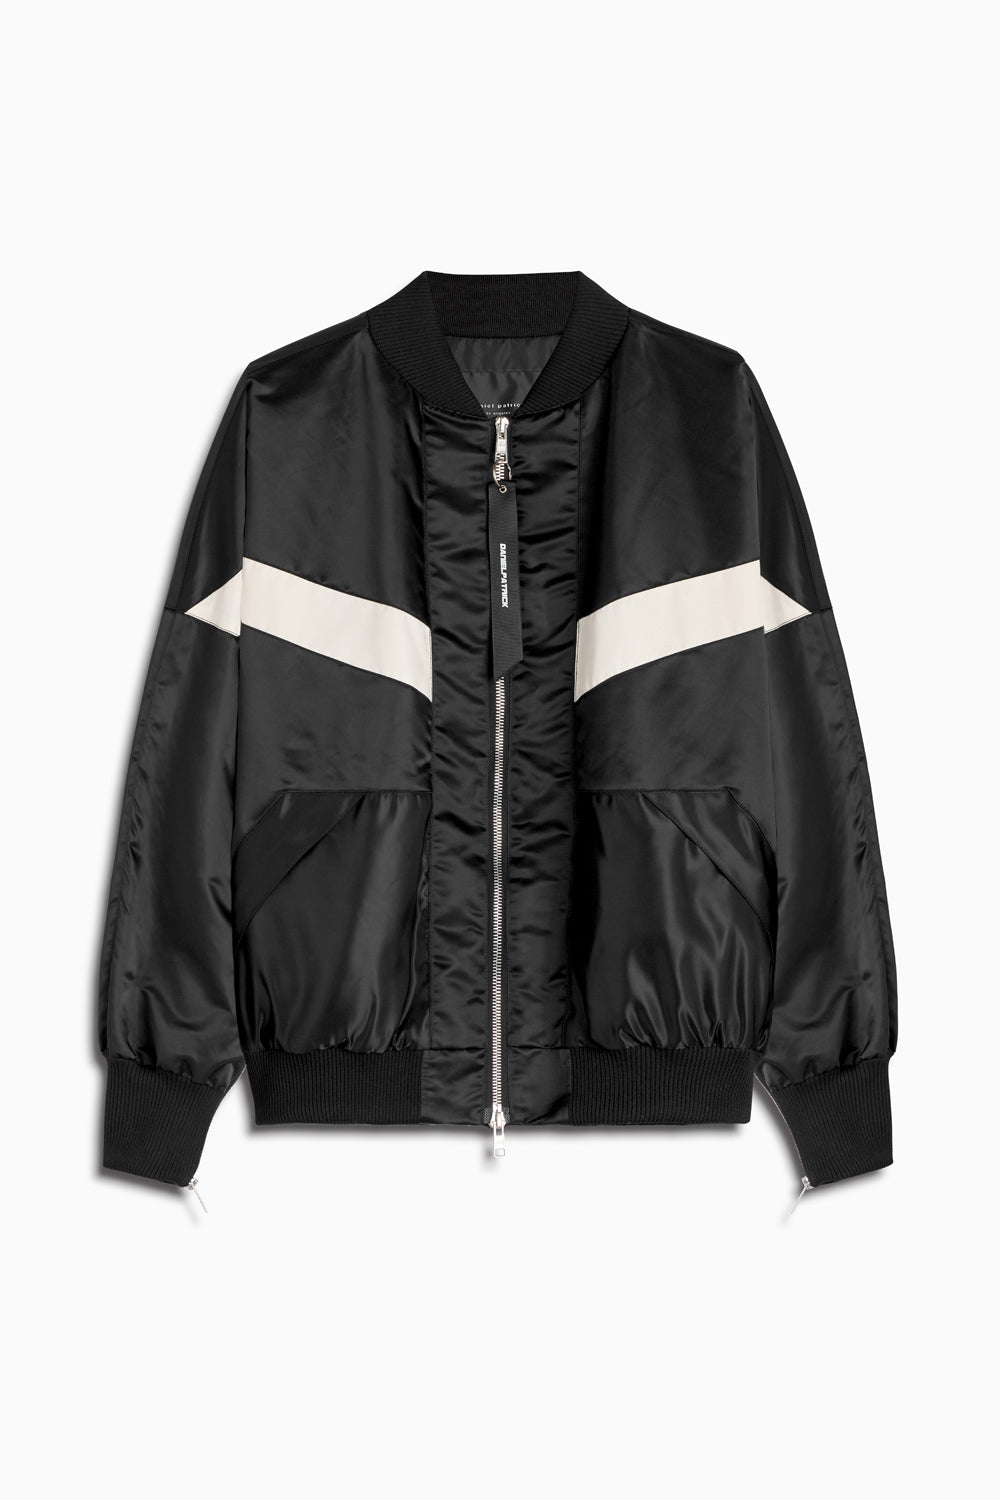 bomber 8 in black/ivory by daniel patrick